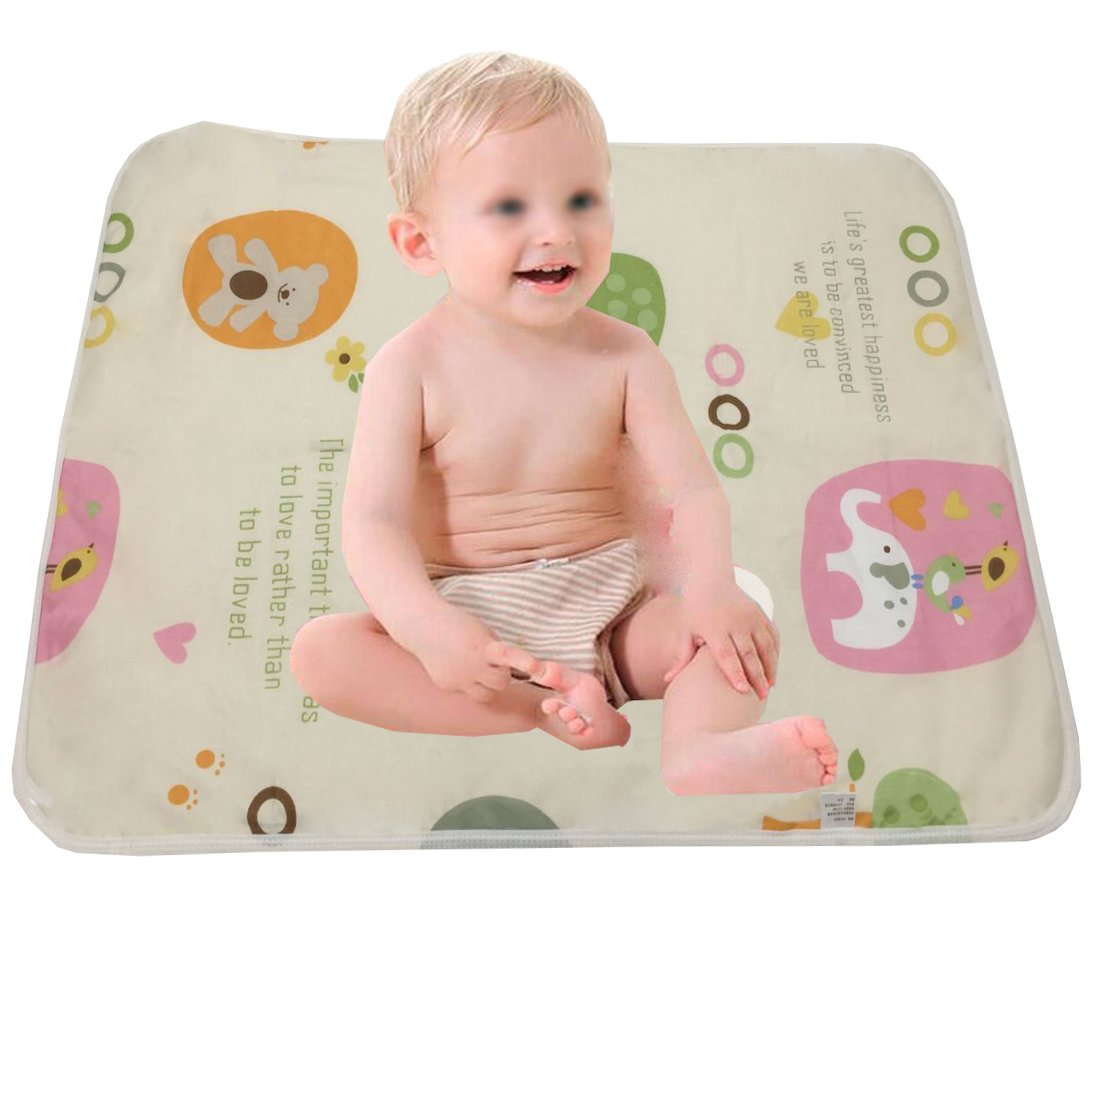 October Elf Unisex Baby Waterproof Diaper Changing Mat Pad with Large Size (20*28, L/1pc) None-Name OE432L1